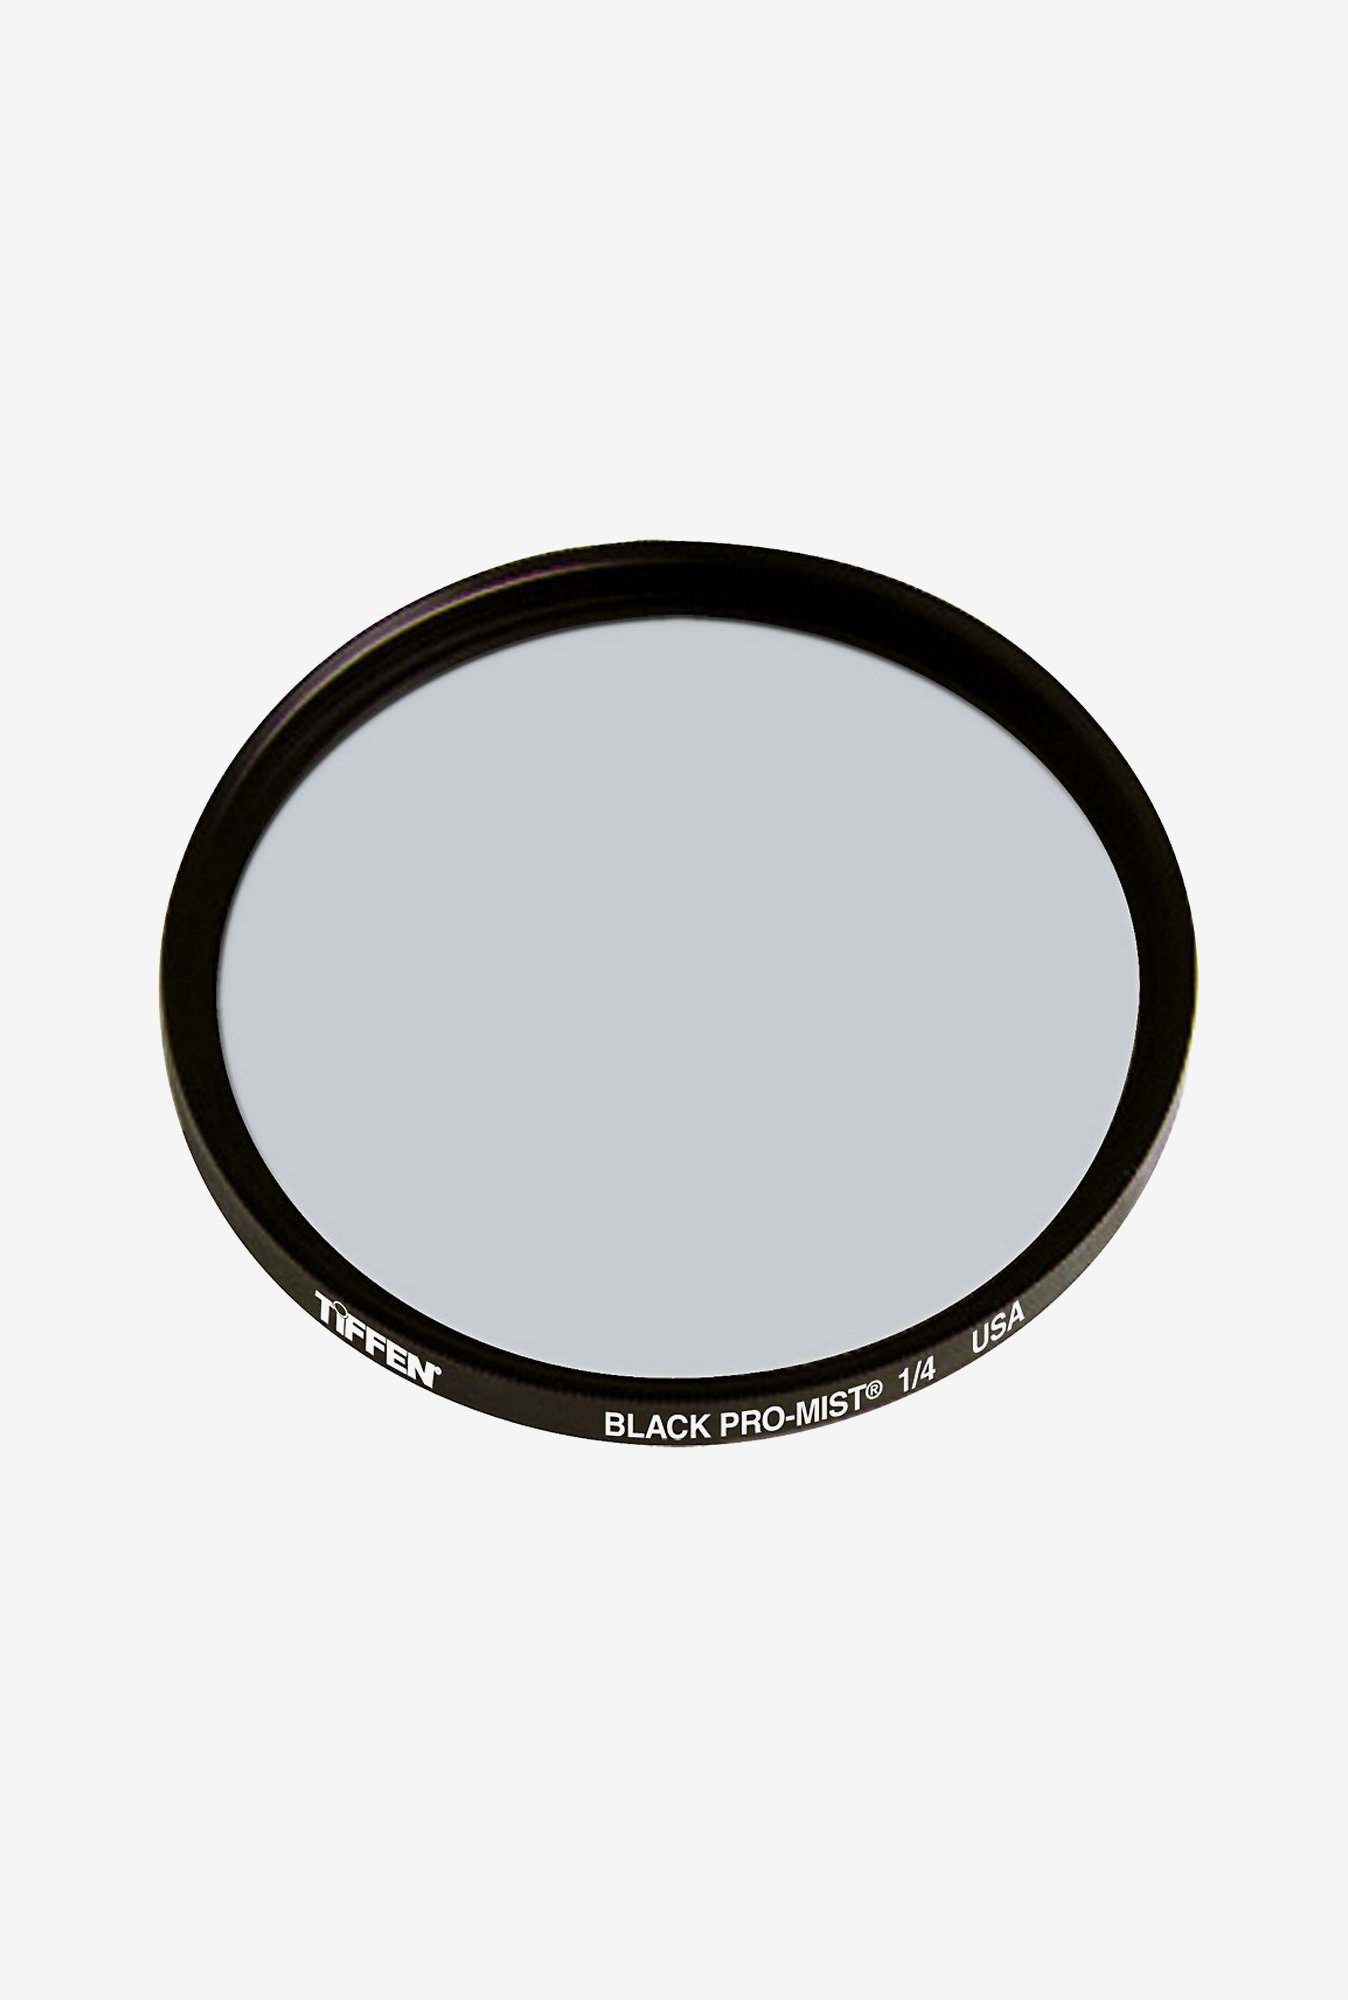 Tiffen 49mm Black Pro-Mist 1/4 Filter (Black)